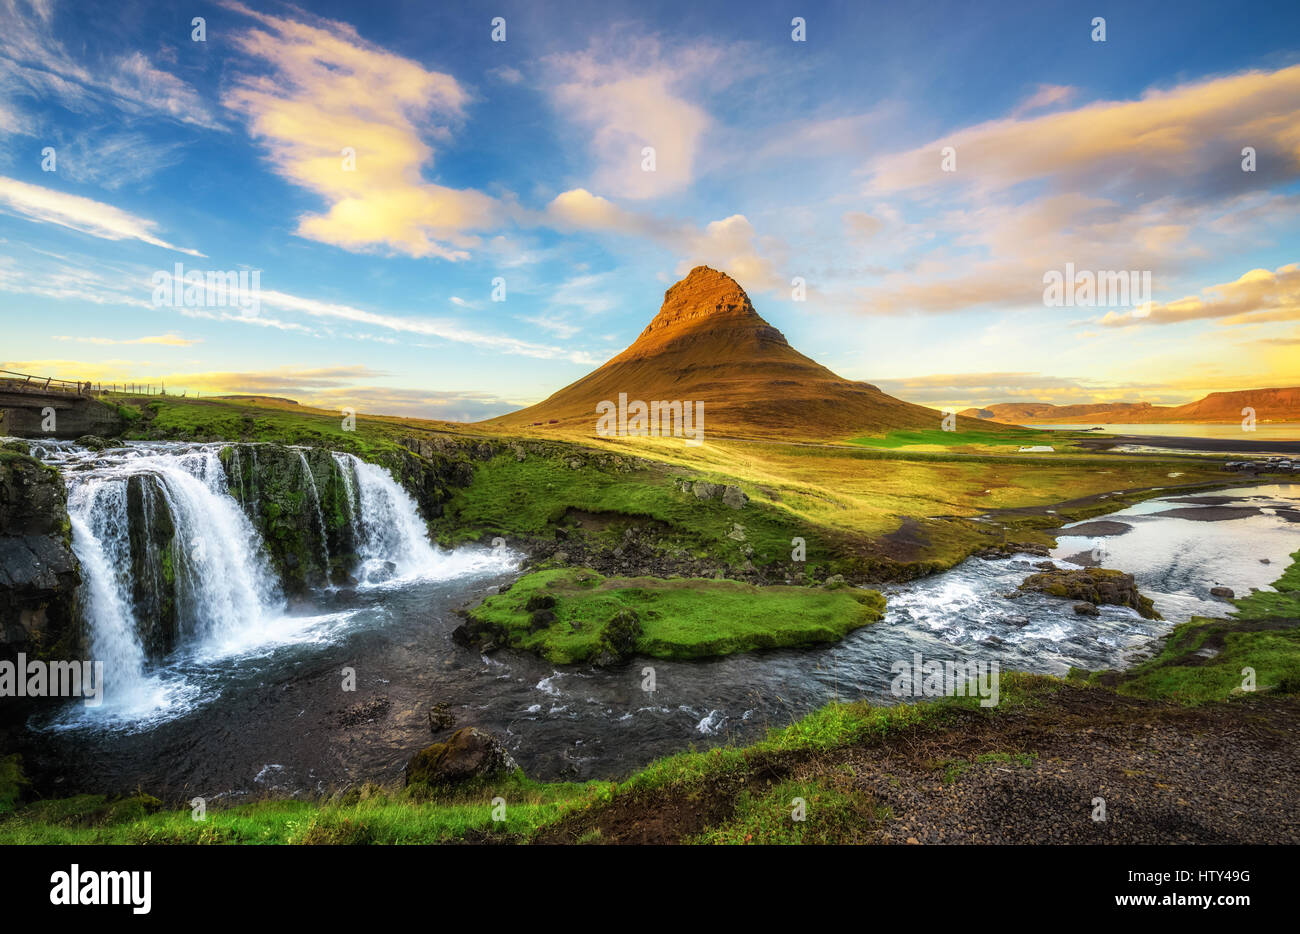 Summer sunset over the famous Kirkjufellsfoss Waterfall with Kirkjufell mountain in the background in Iceland - Stock Image